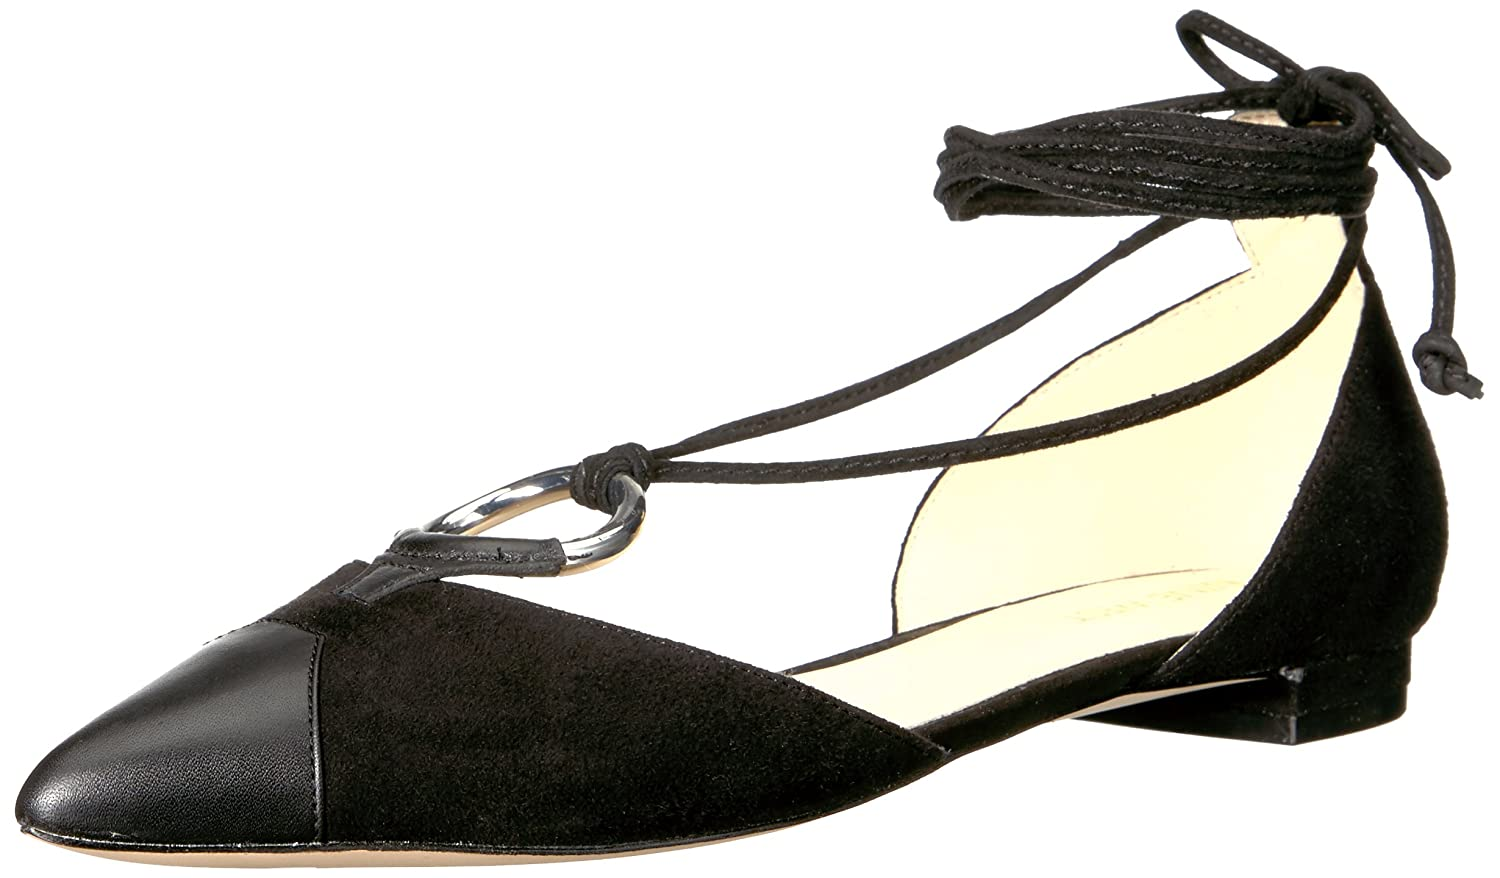 Nine West Women's Alice Suede Pointed Toe Flat B01IOZTZSA 6.5 B(M) US|Black